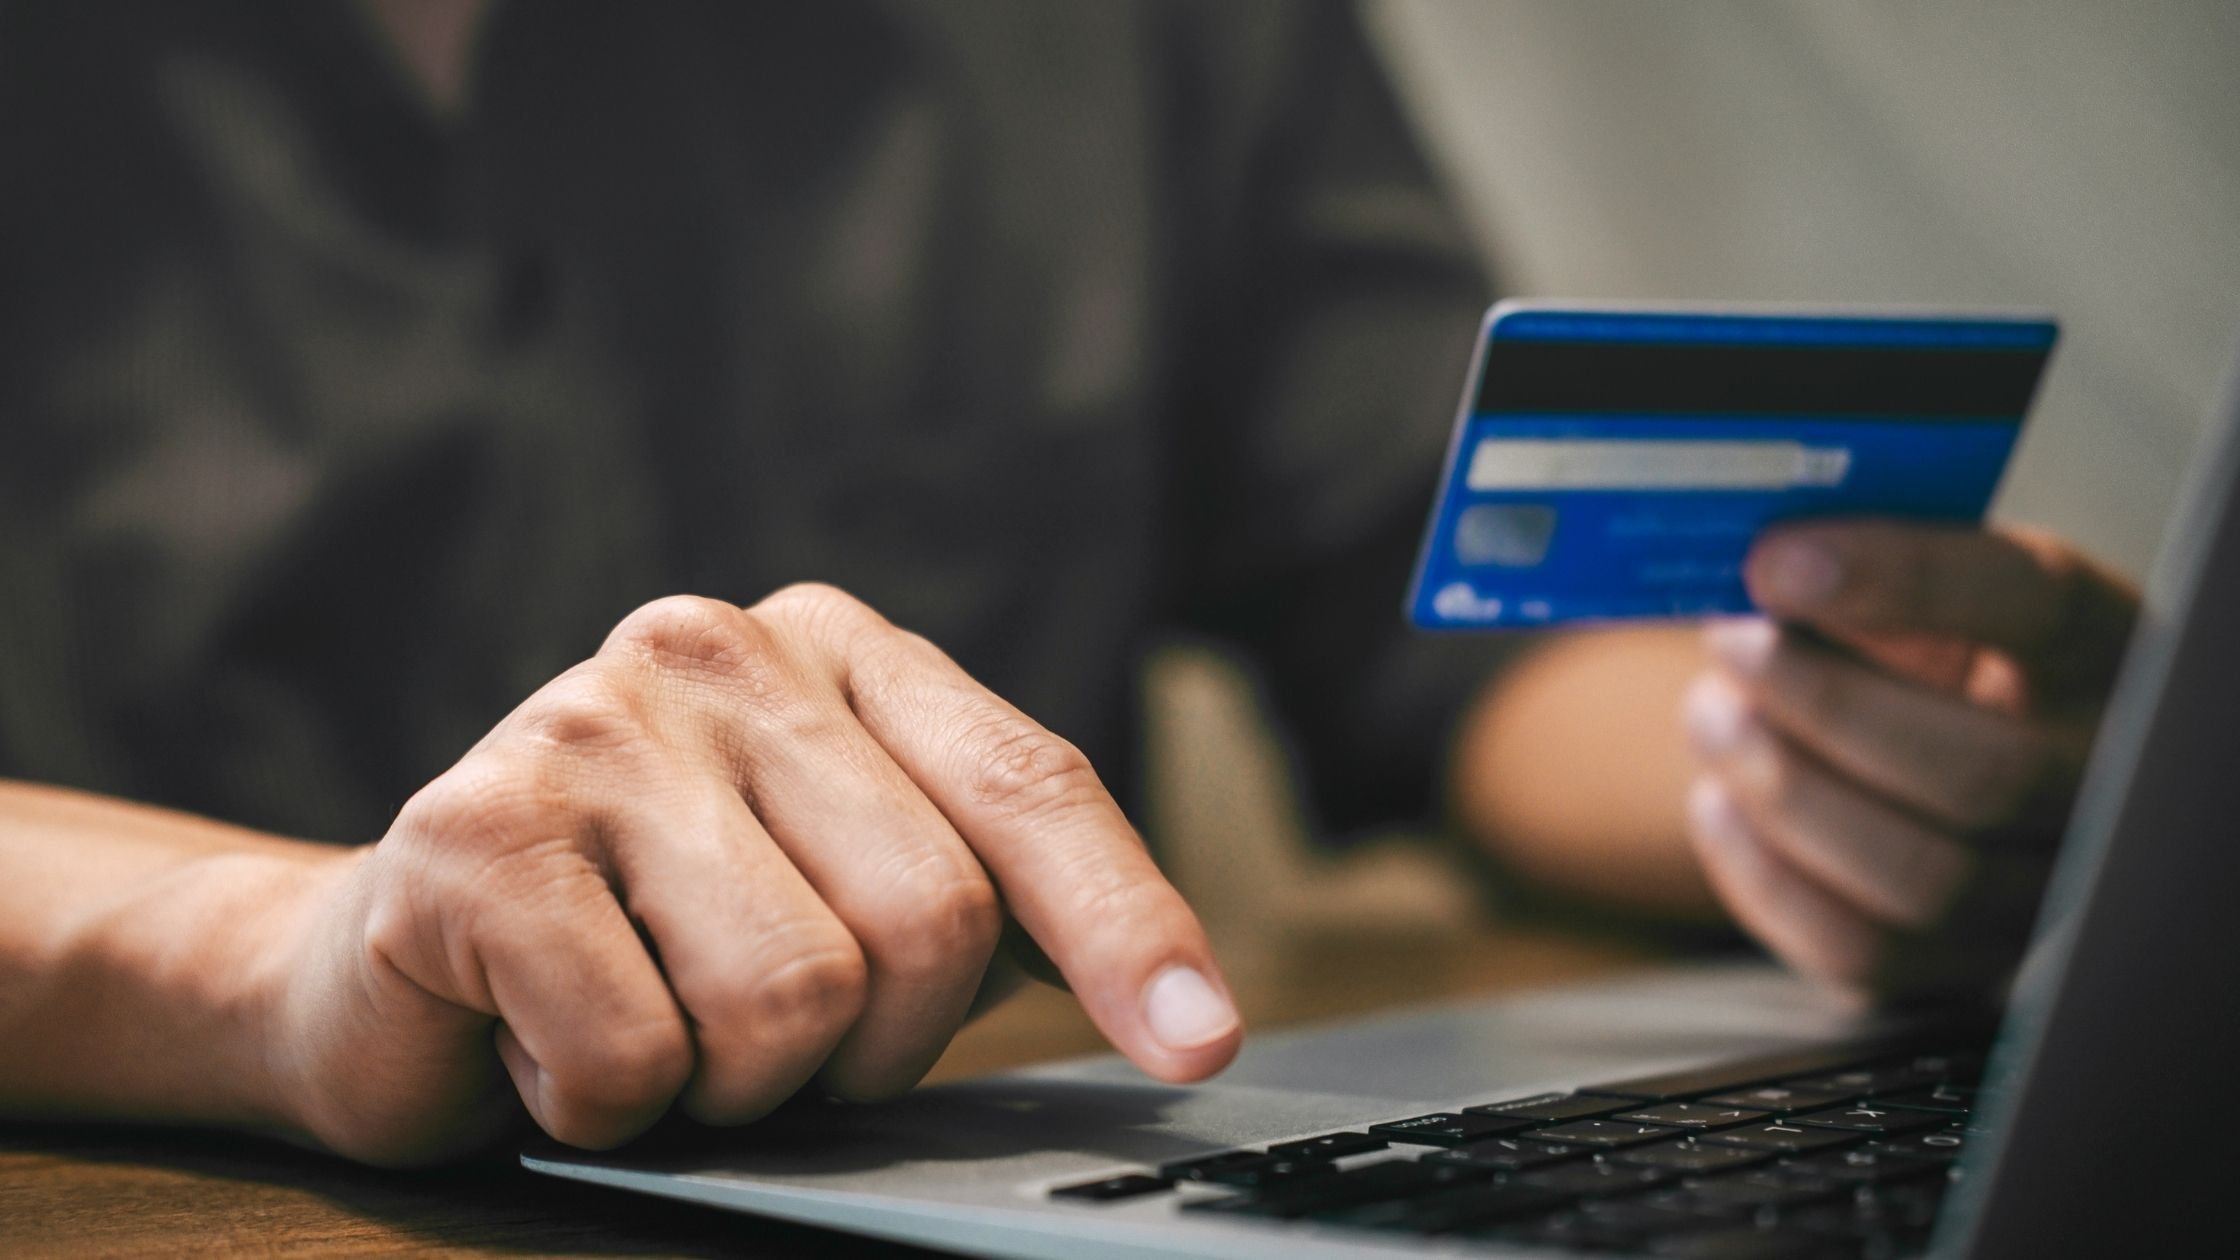 Person using Credit Card at Laptop